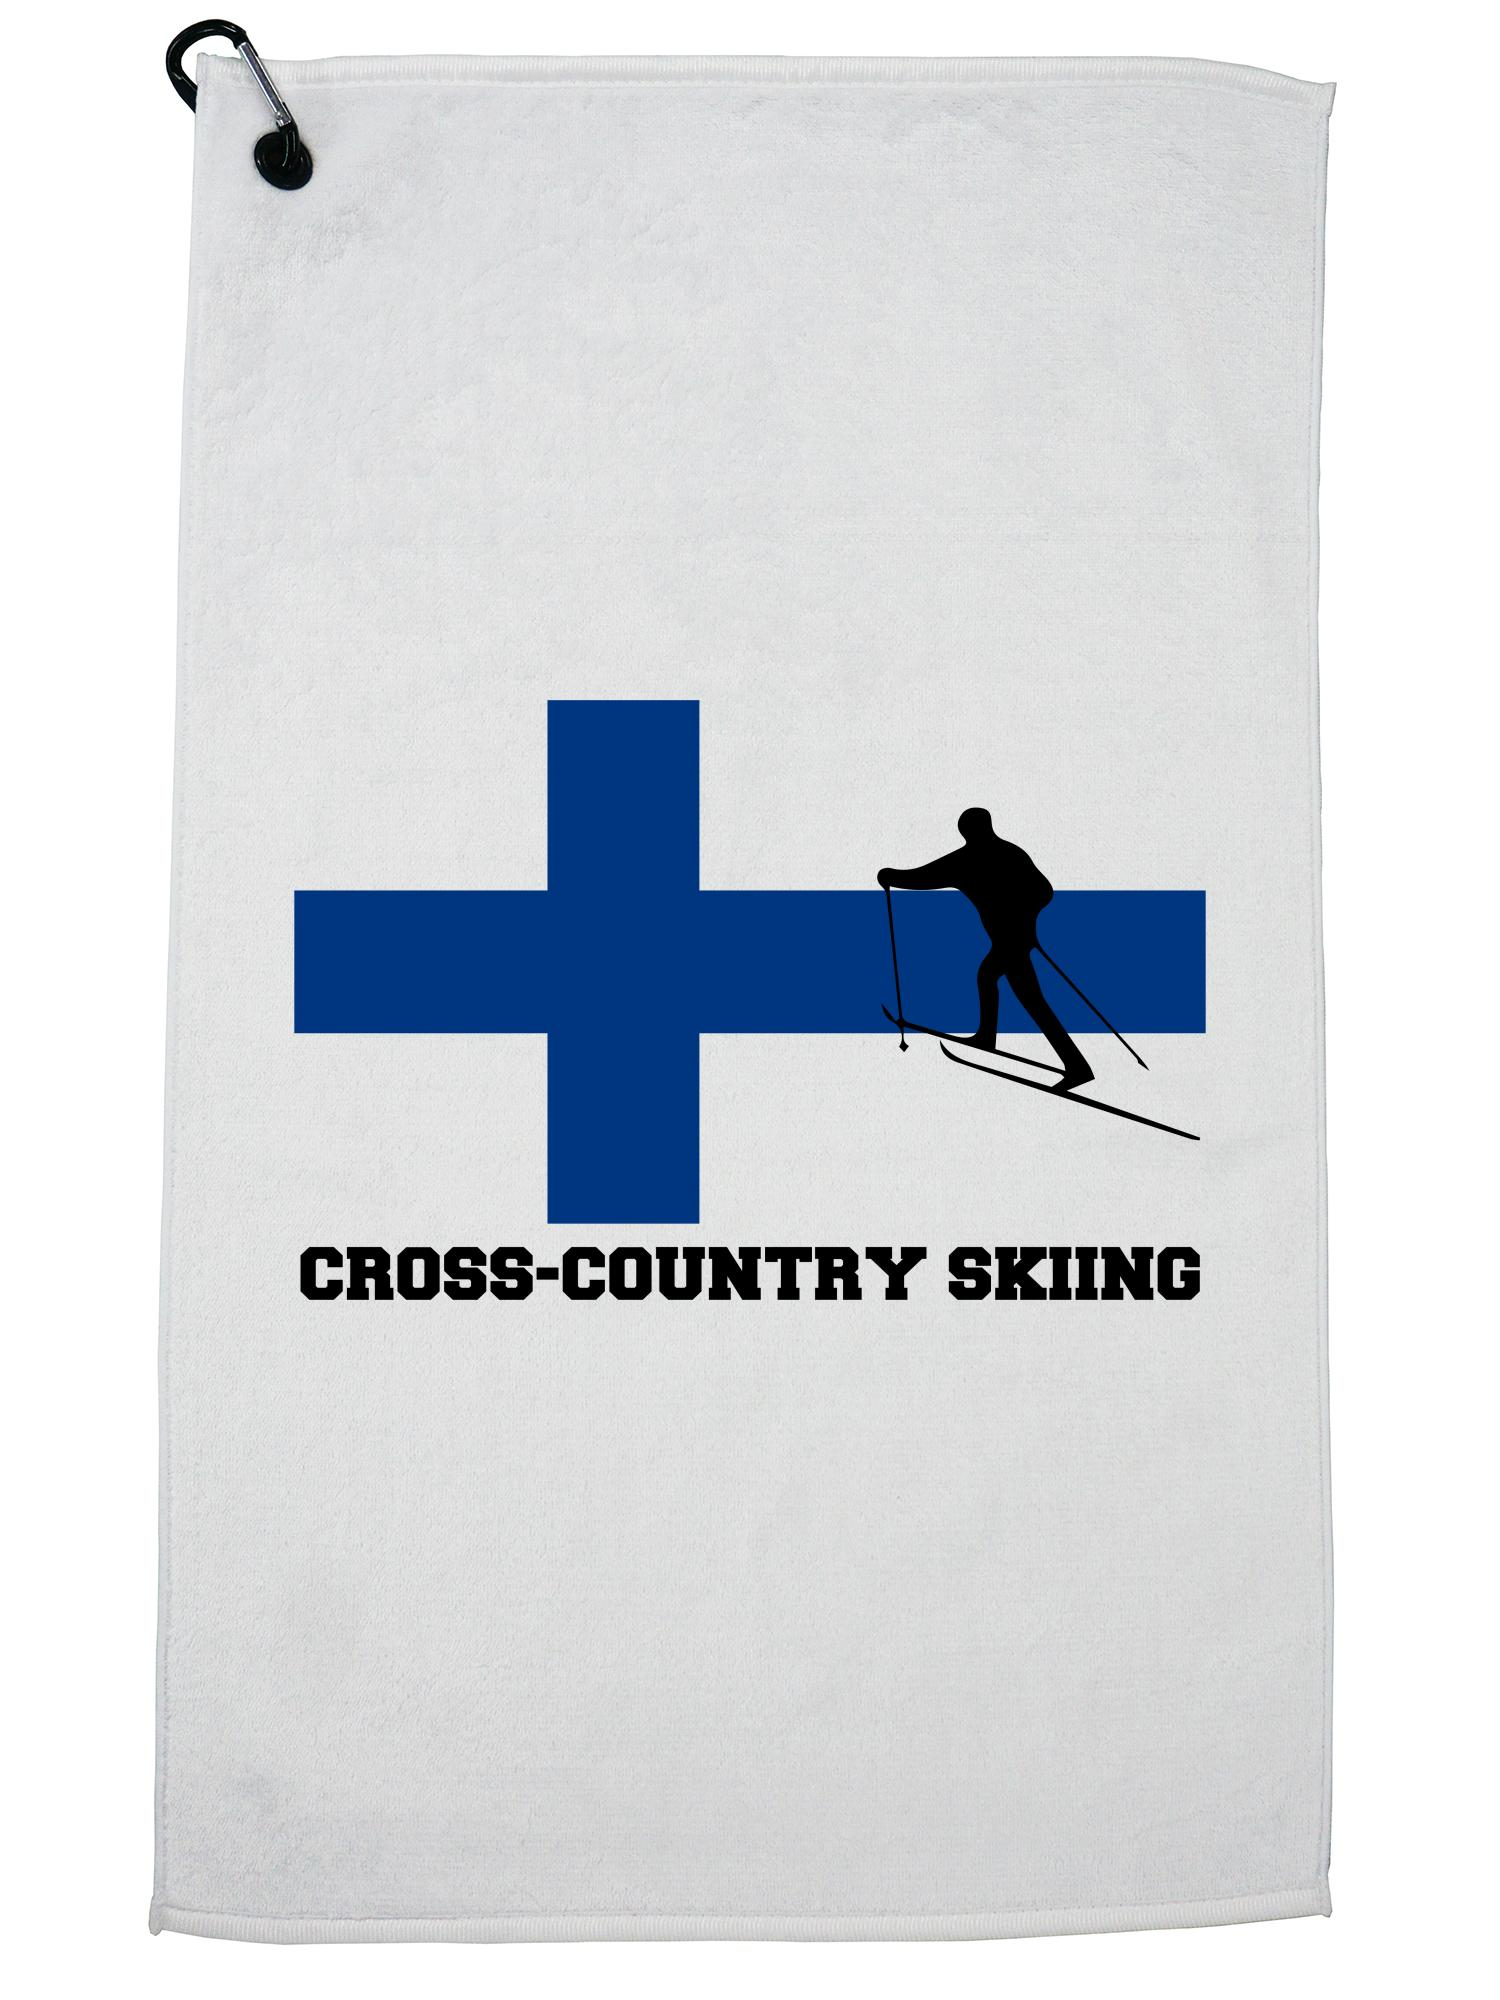 Finish Cross-Country Skiing Winter Olympic FIN Flag Golf Towel with Carabiner Clip by Hollywood Thread